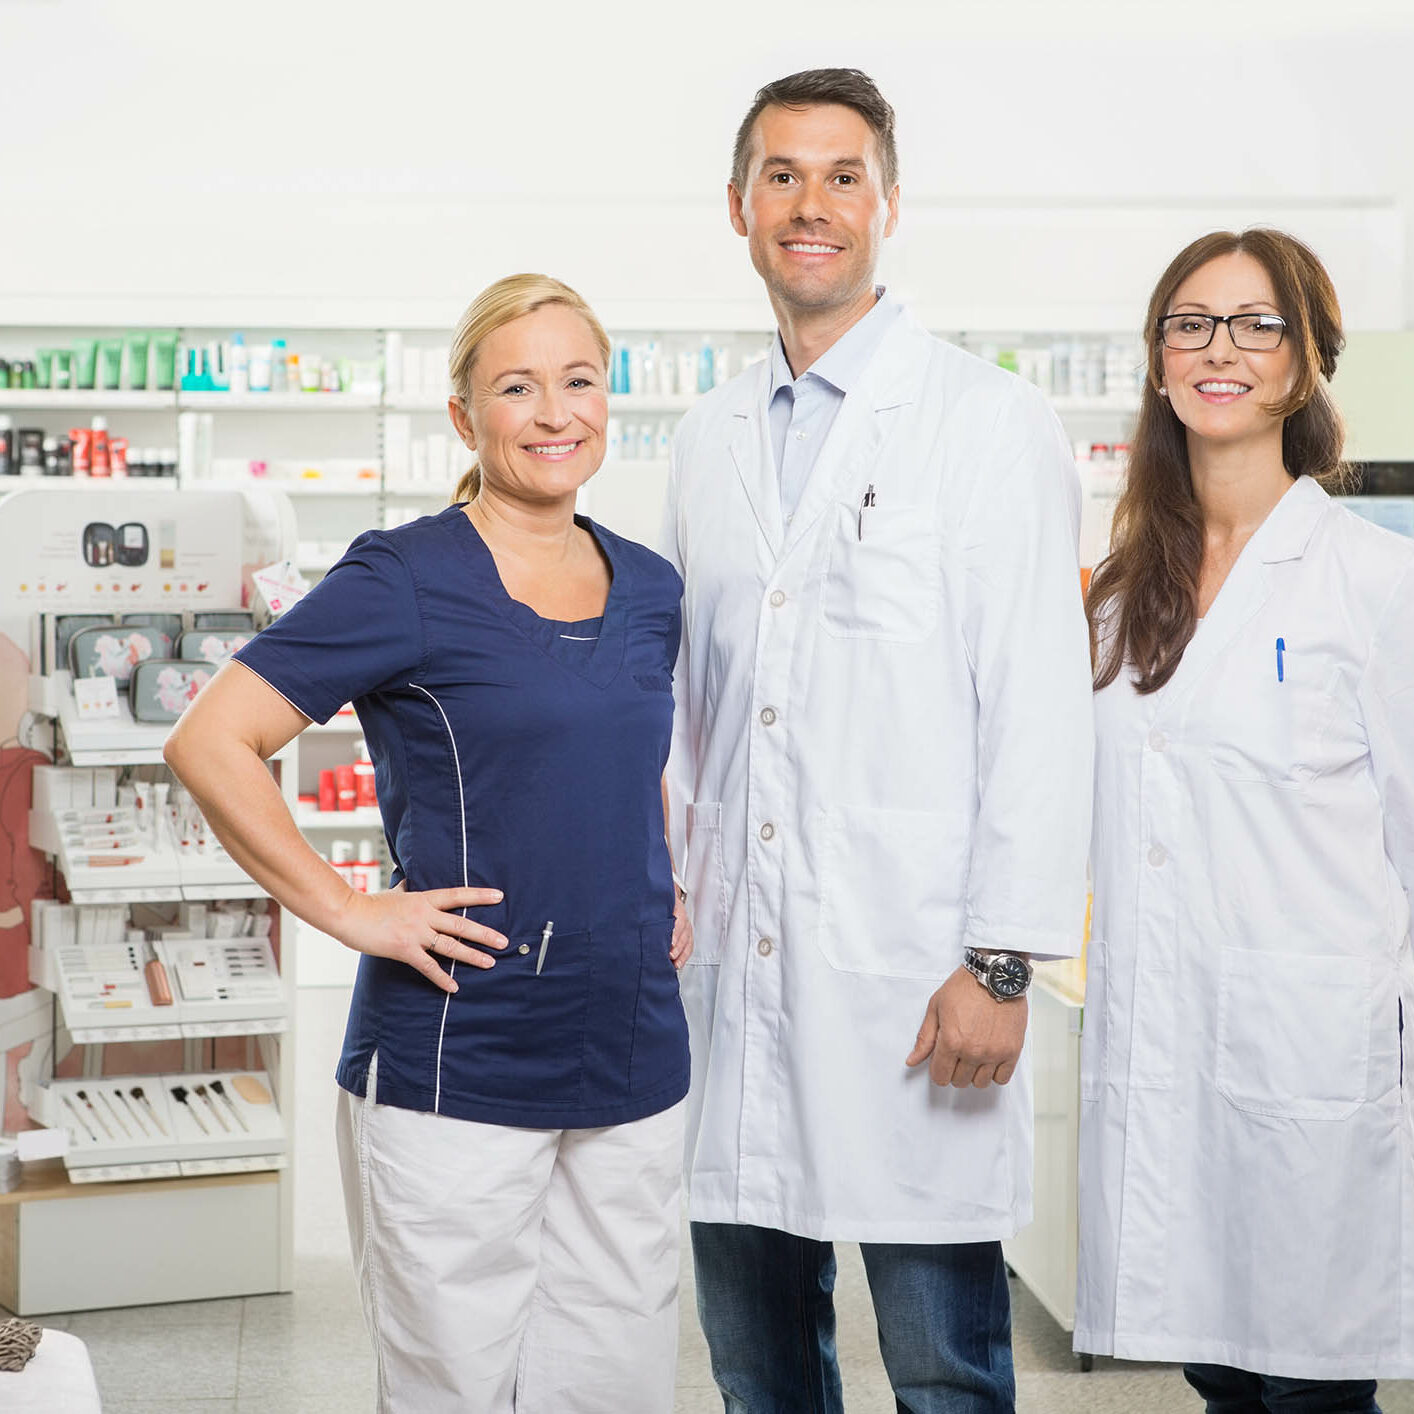 Portrait of confident female assistant with pharmacists standing in pharmacy